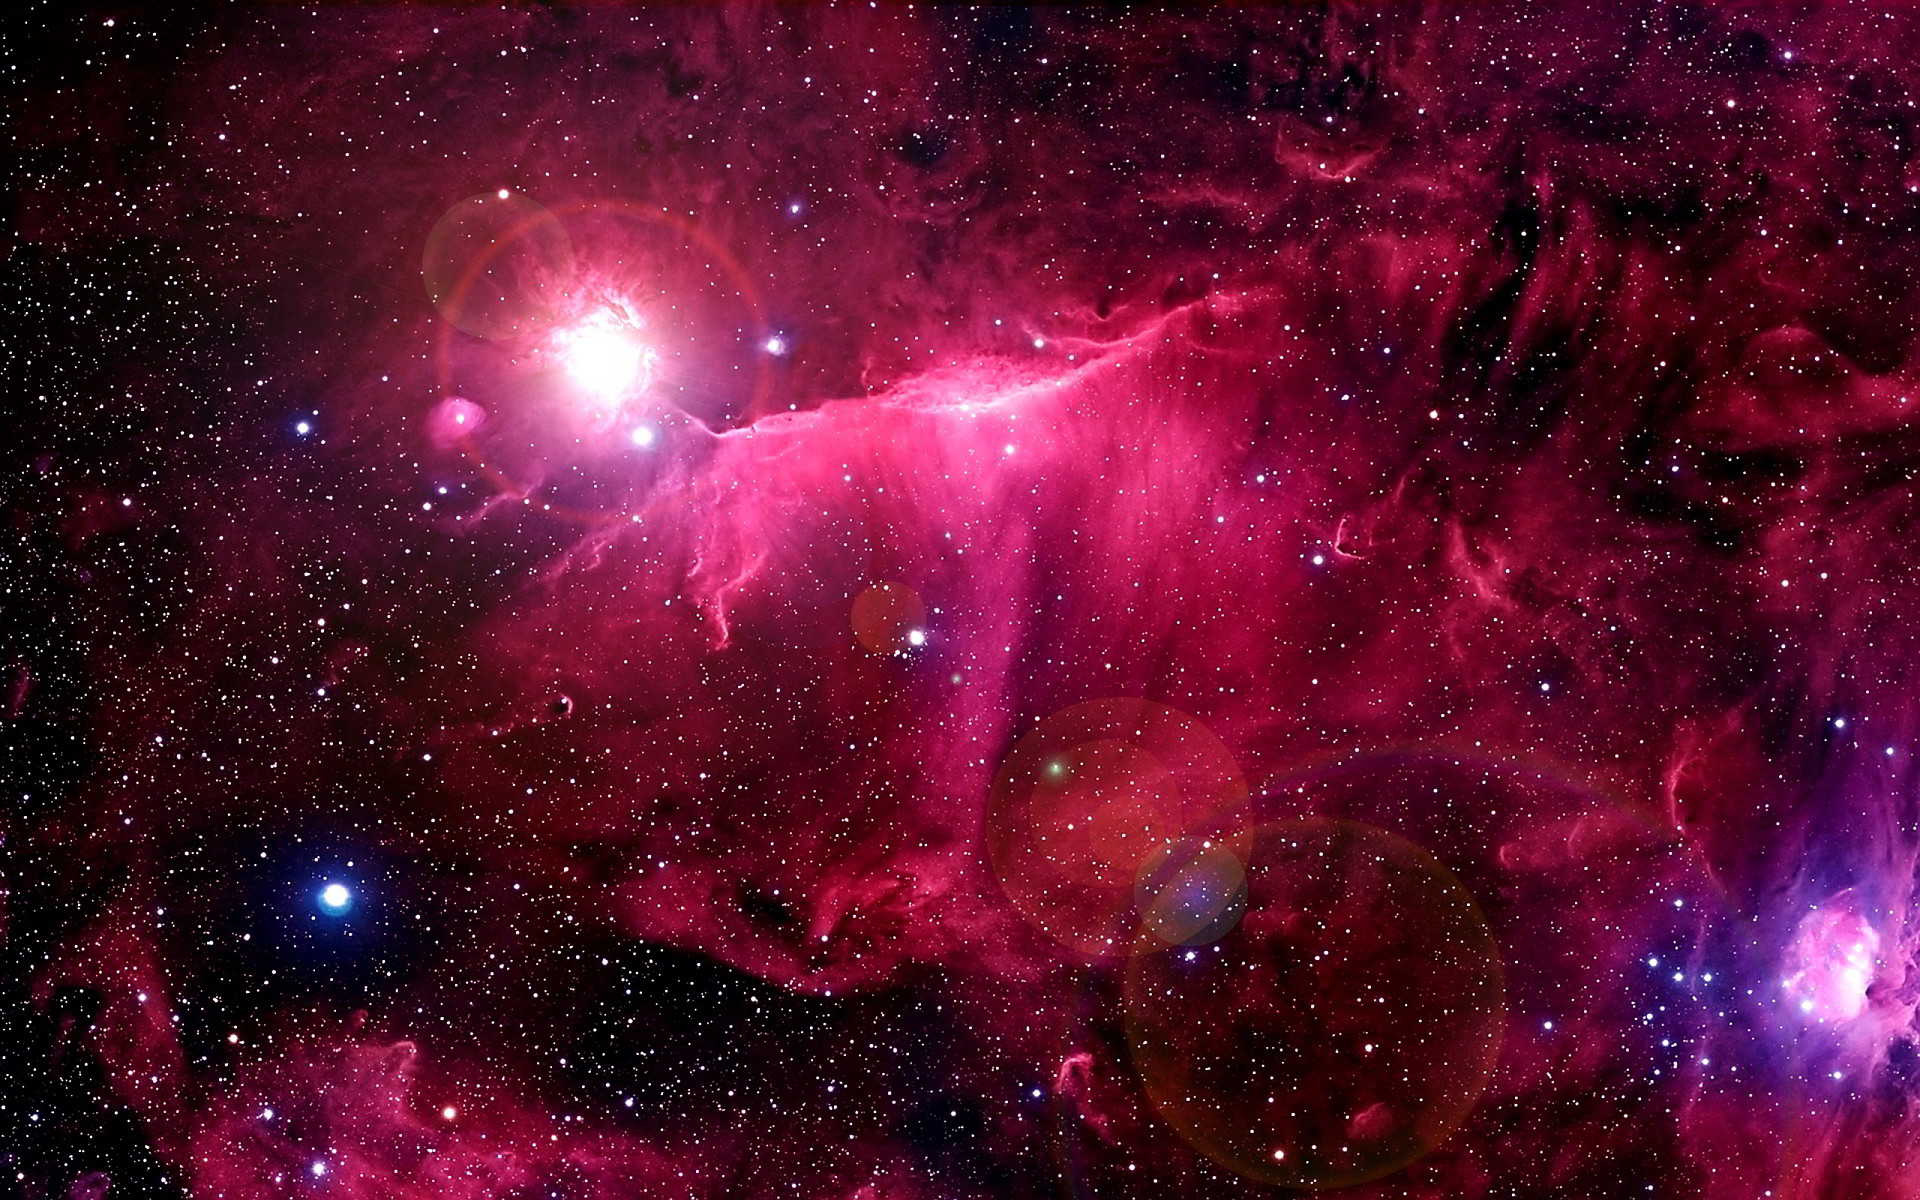 Space is an infinite inspiration. See that hot, fleshy rose and that  textured wisp of purple? Space is so cold, yet all this warmth is still  visible.